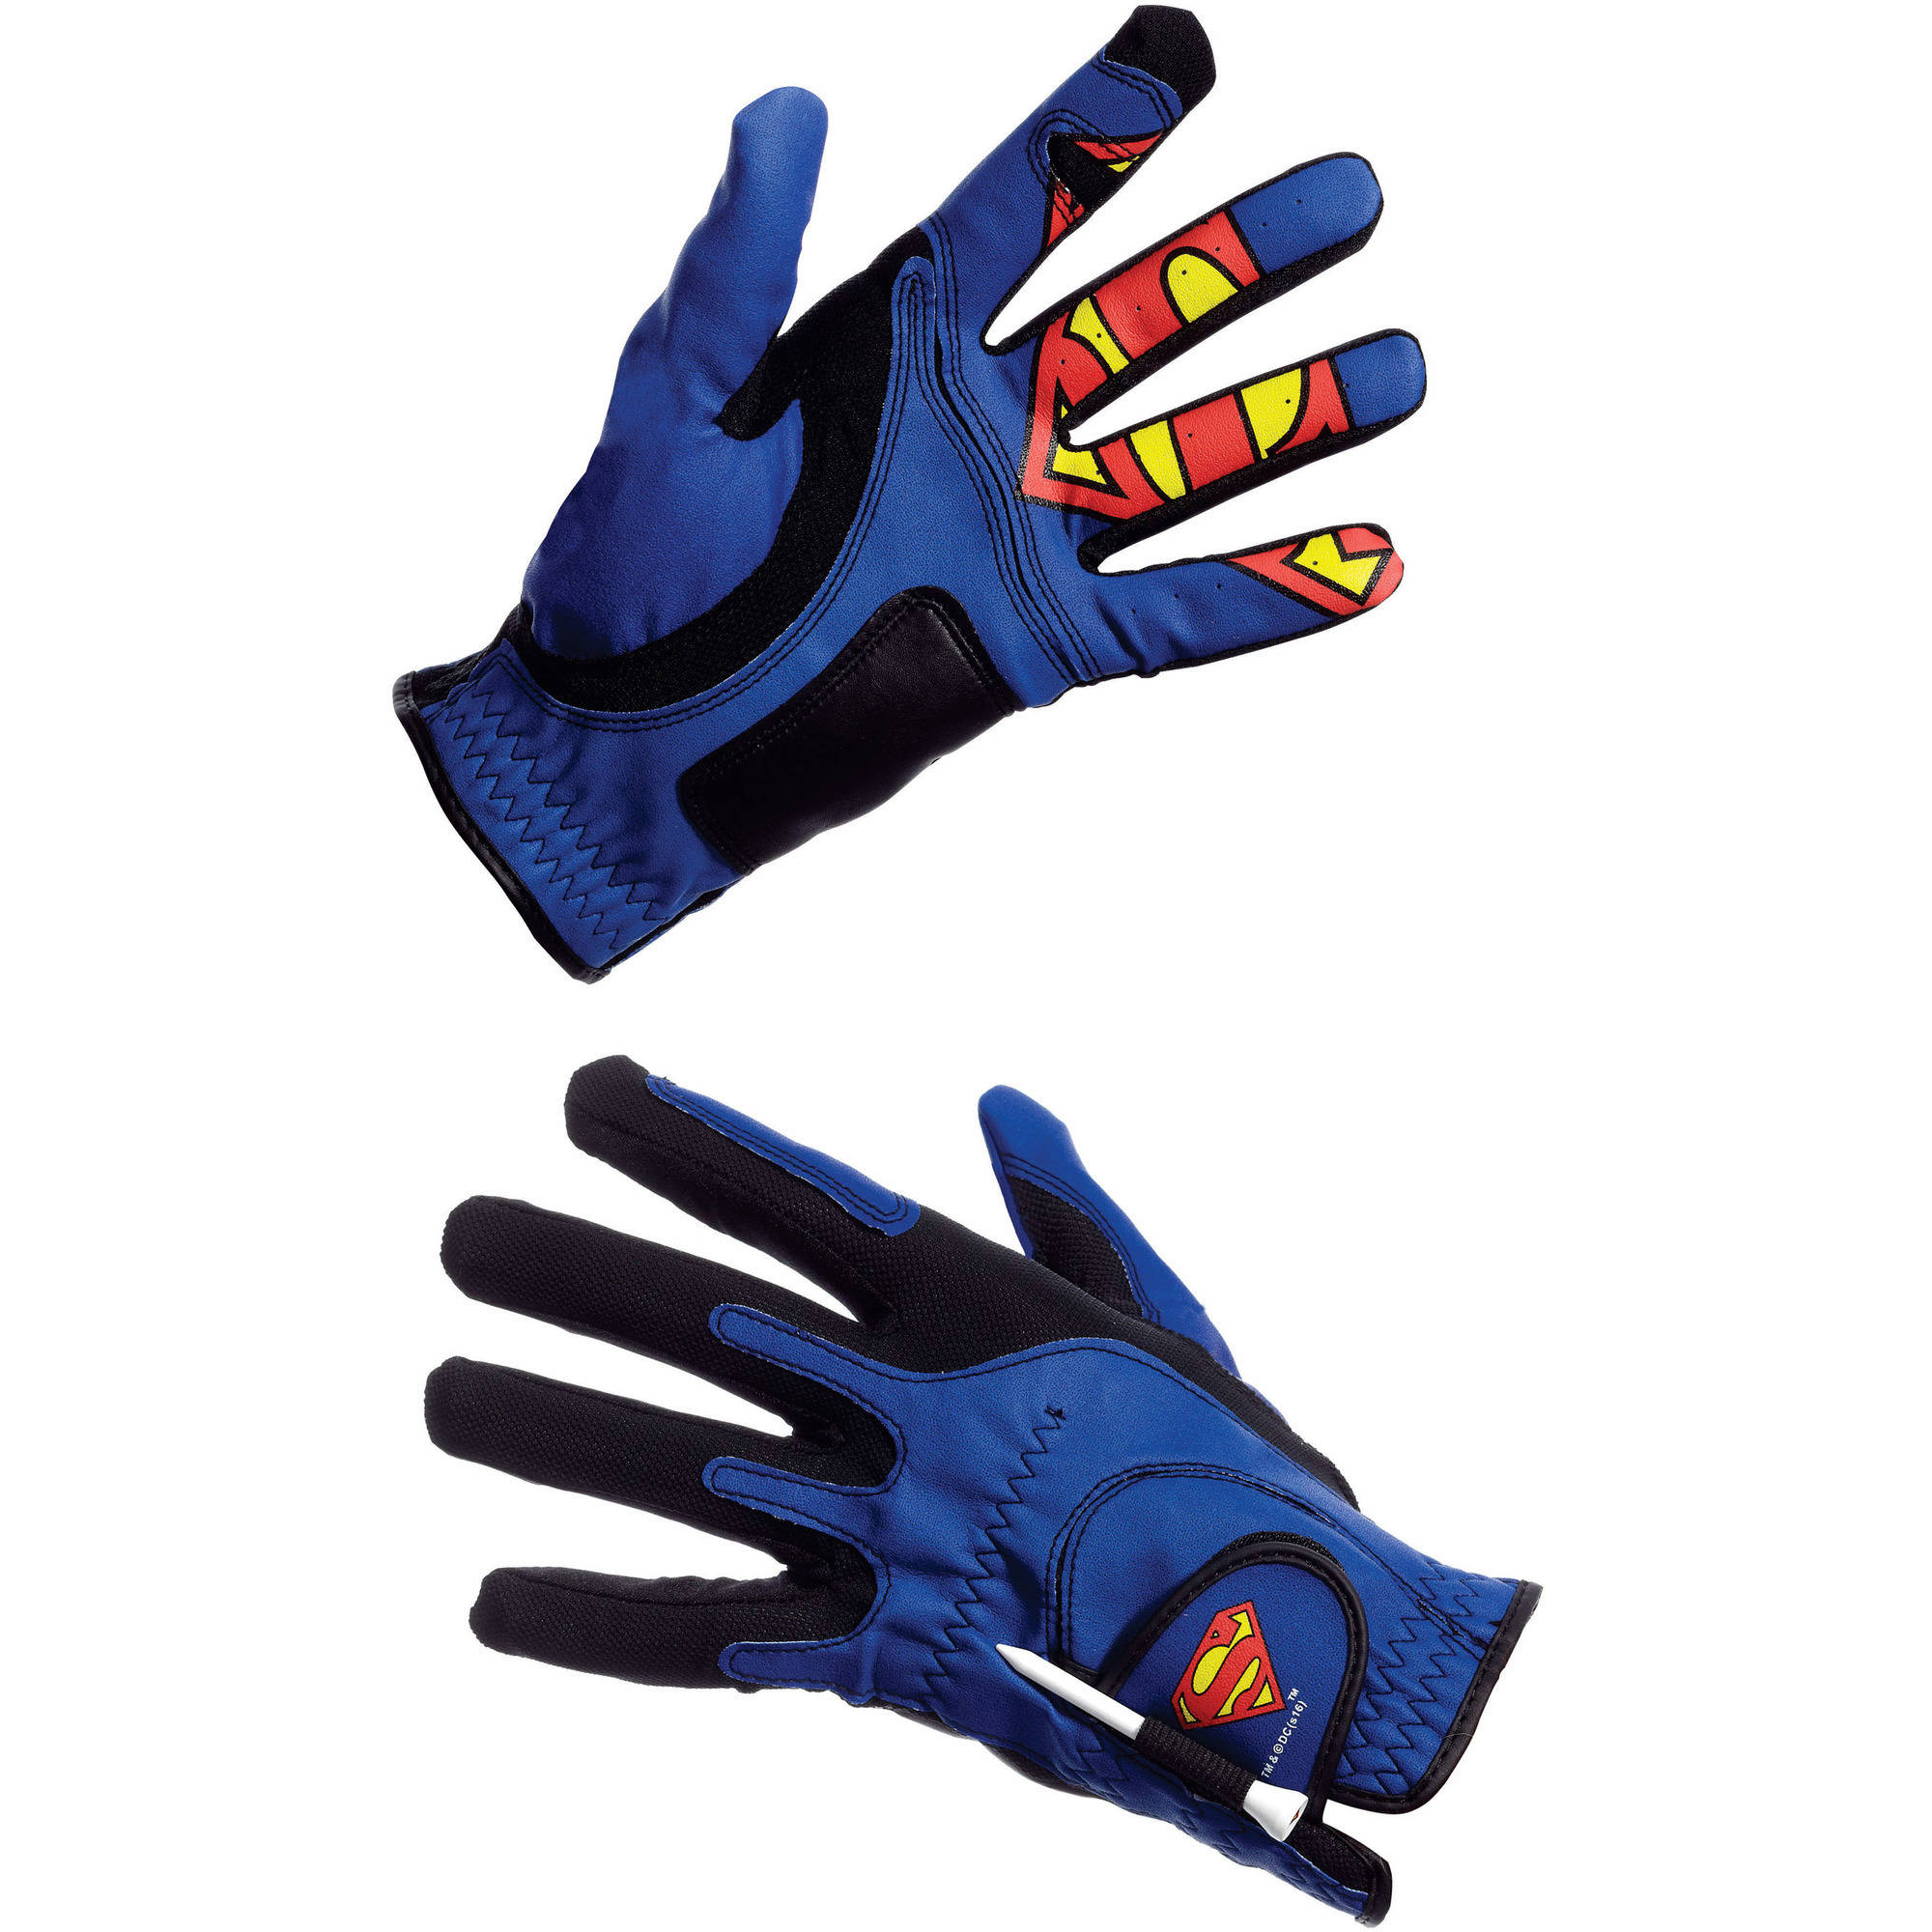 Superman Creative Covers for Golf Golf Glove by Soft Stuff Creations Inc.